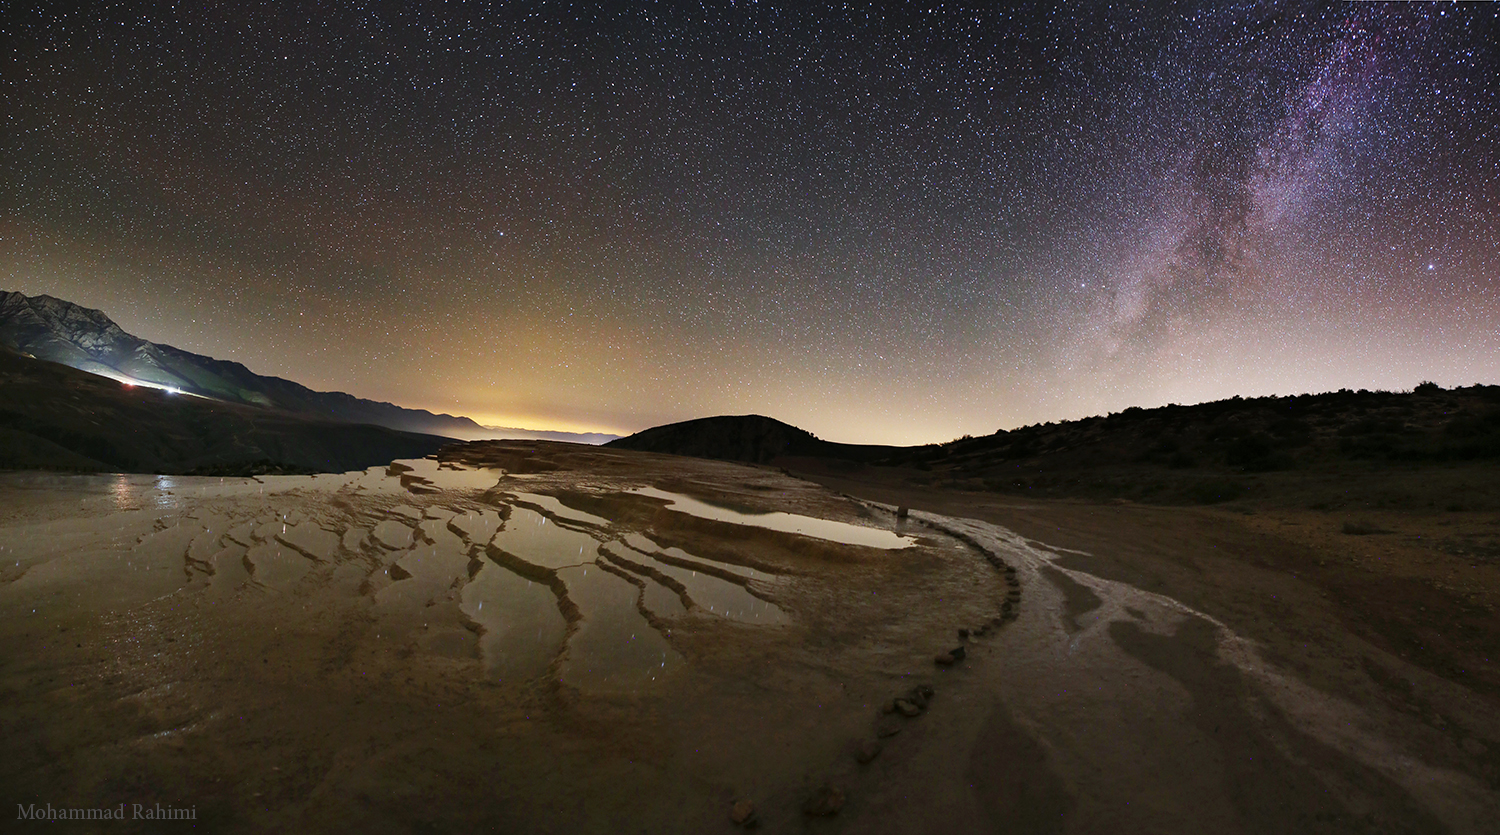 Badab Soort at Night